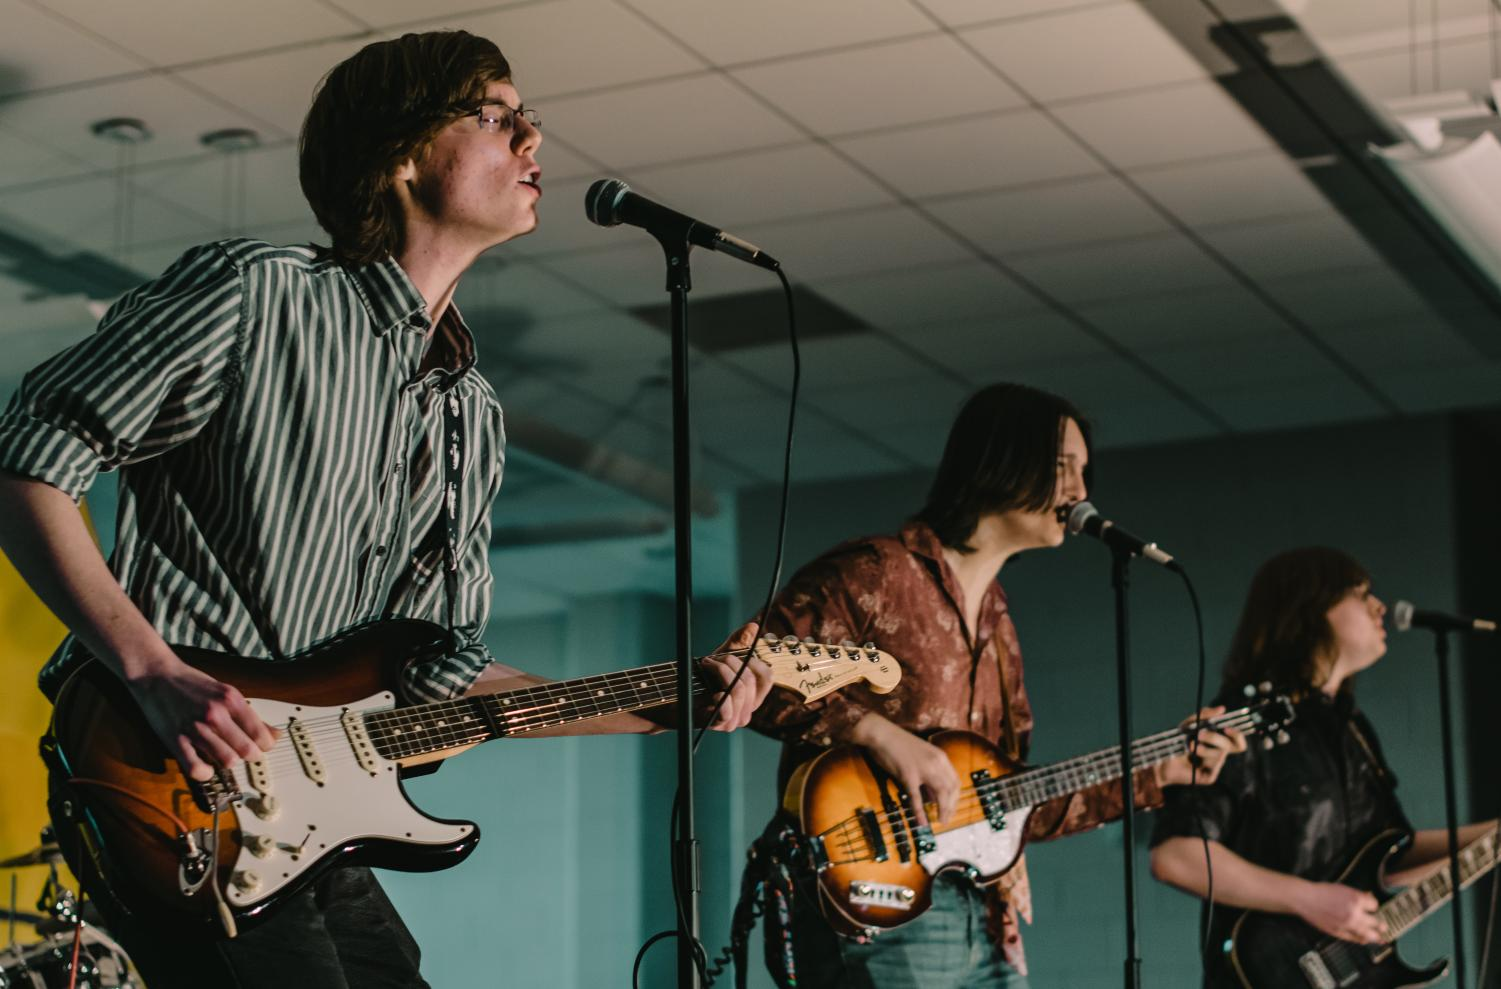 Junior Ryan Swanson of Brielle, left, and senior Kevin Clark of Spring Lake, center, won the 2019 Battle of the Bands with their band